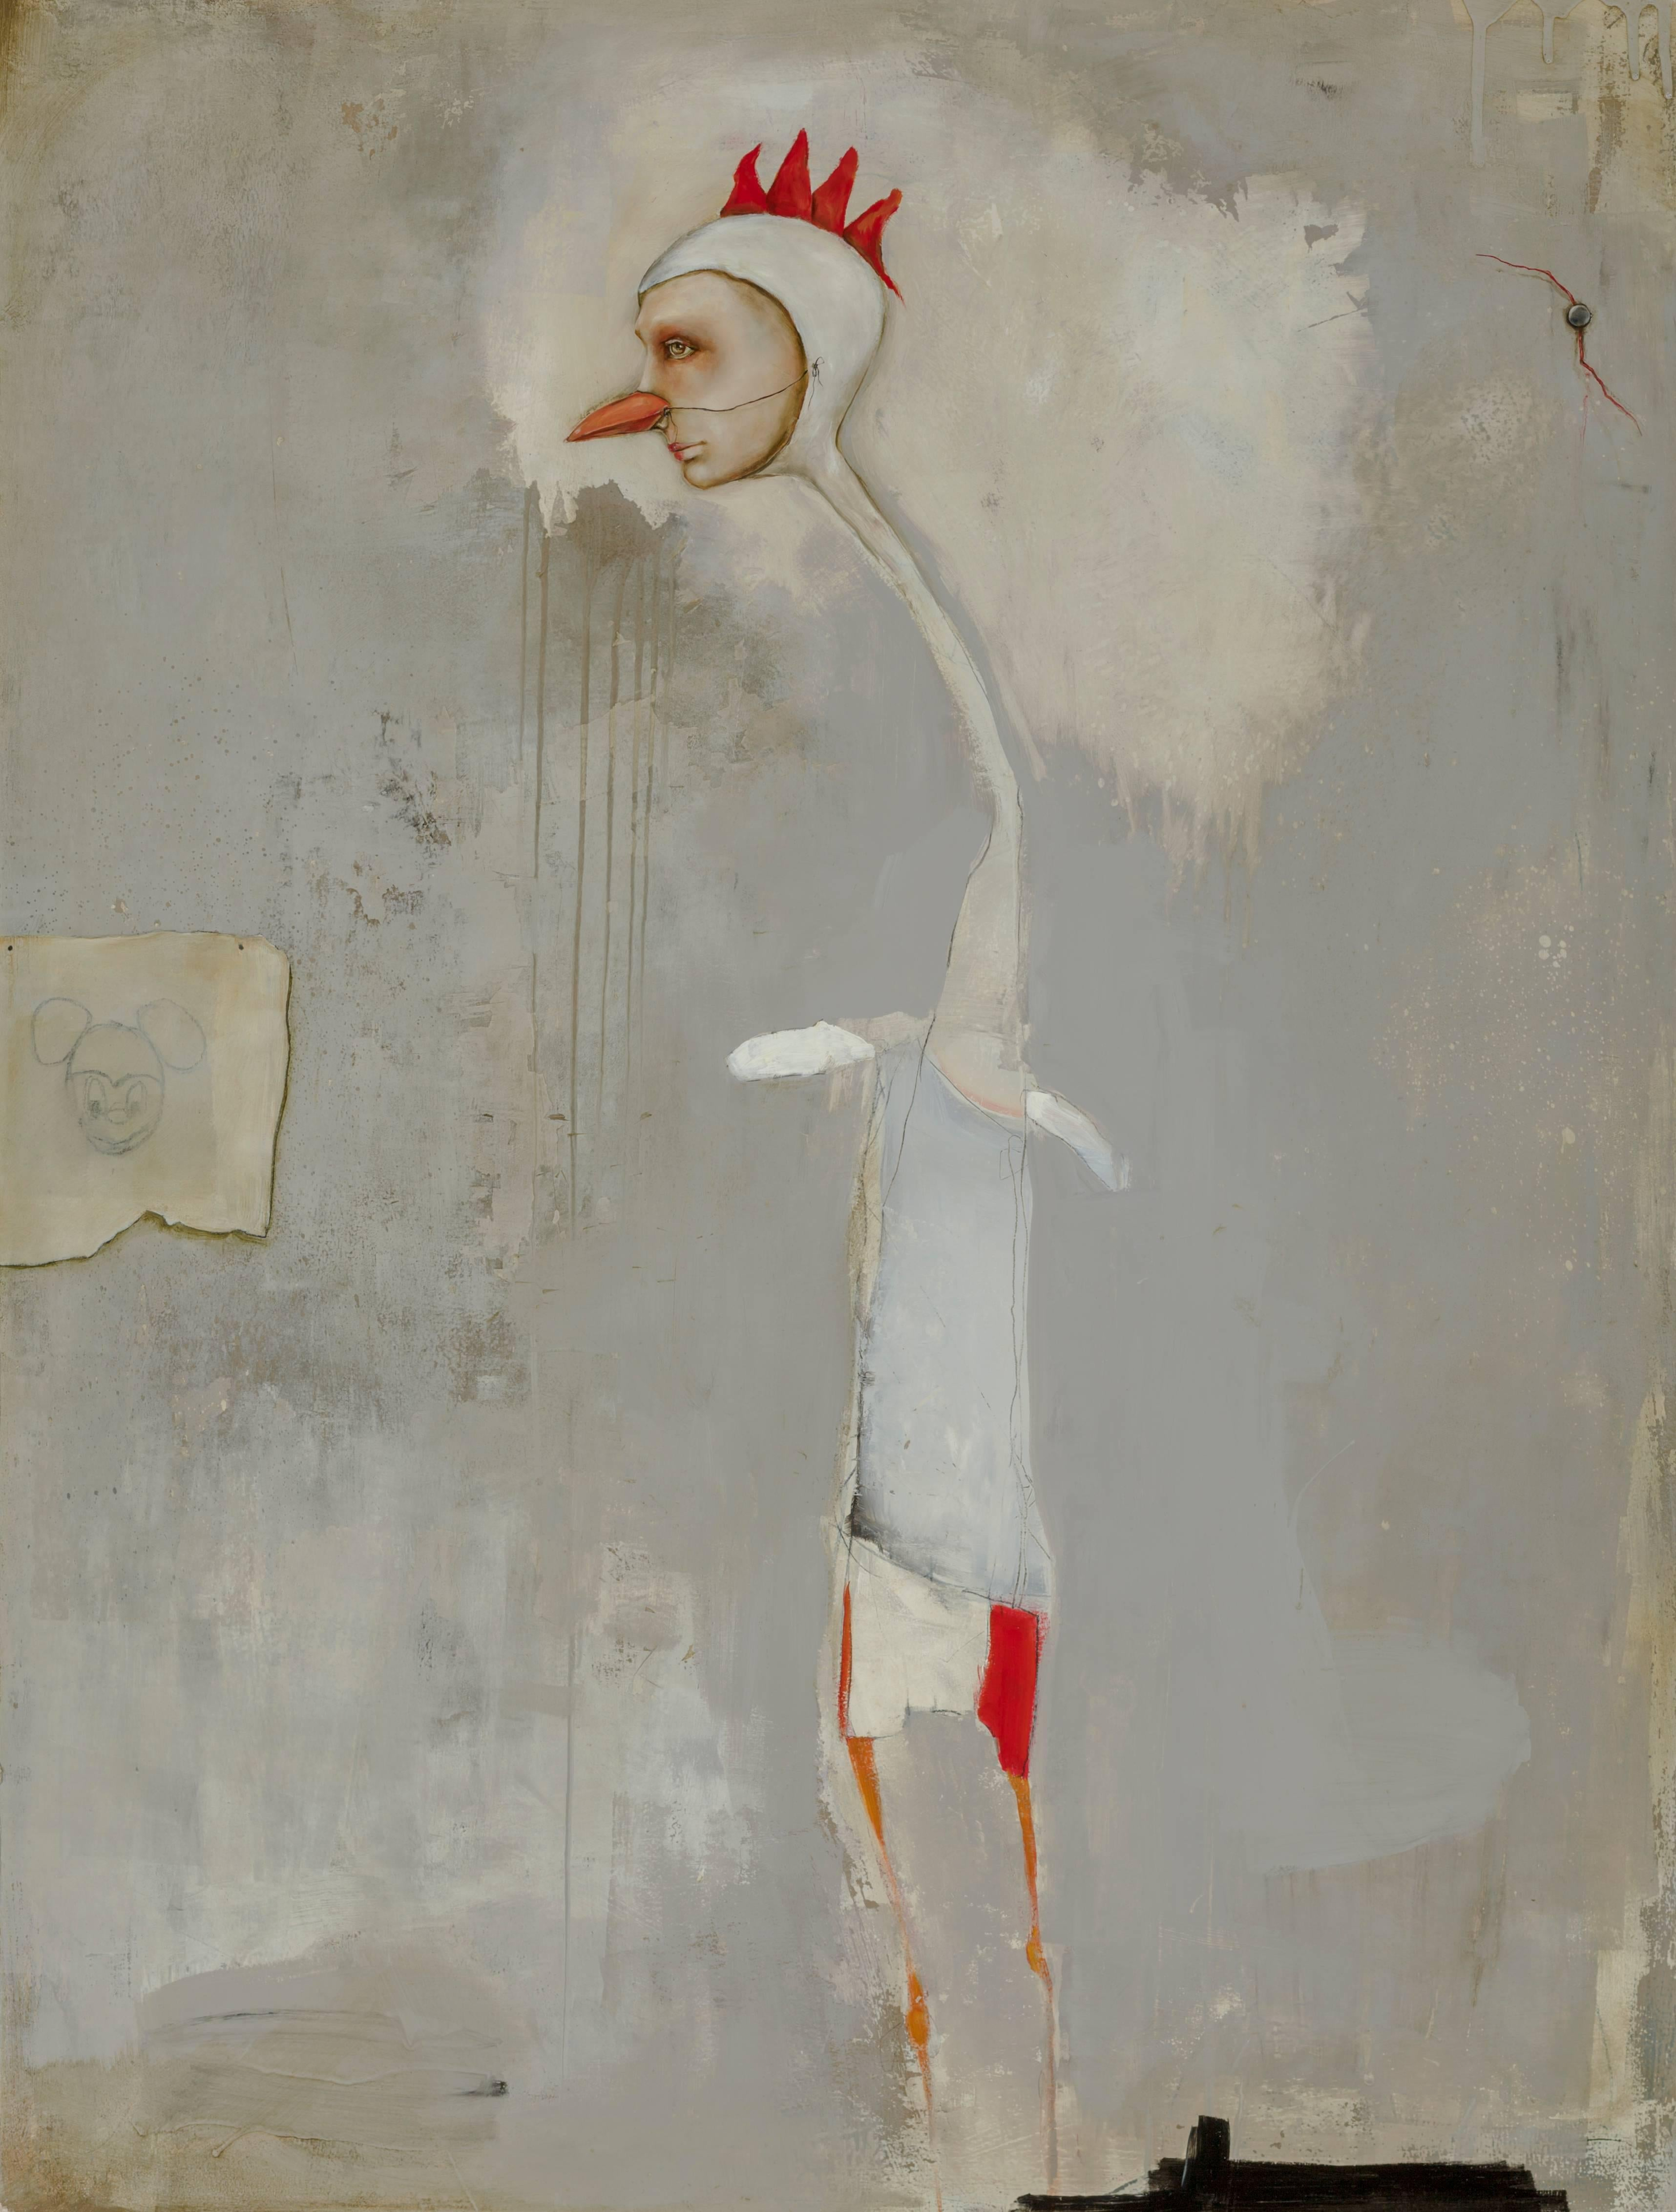 Chicken Scratch, Michele Mikesell, Oil on wood, abstract figurative painting